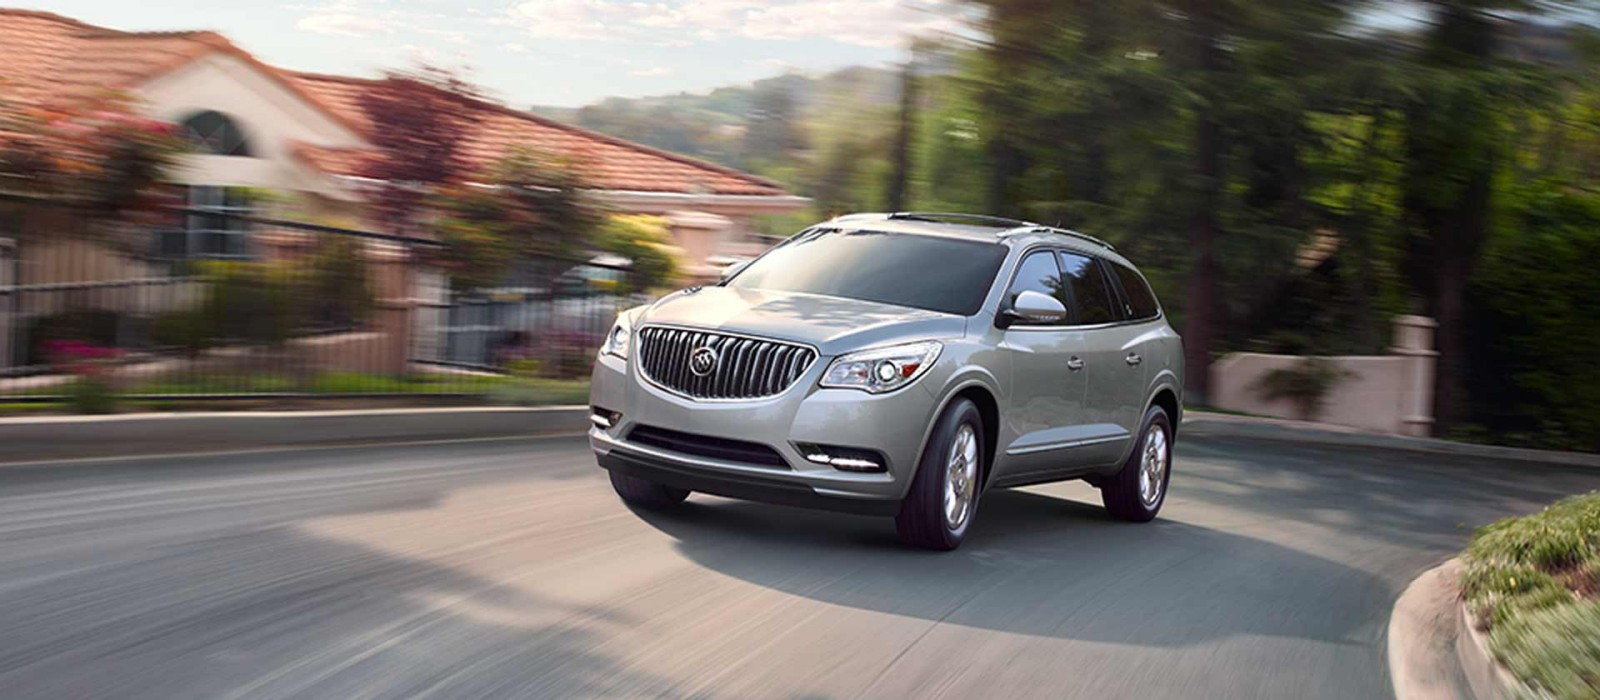 2017 Buick Enclave for Sale near Boardman, OH